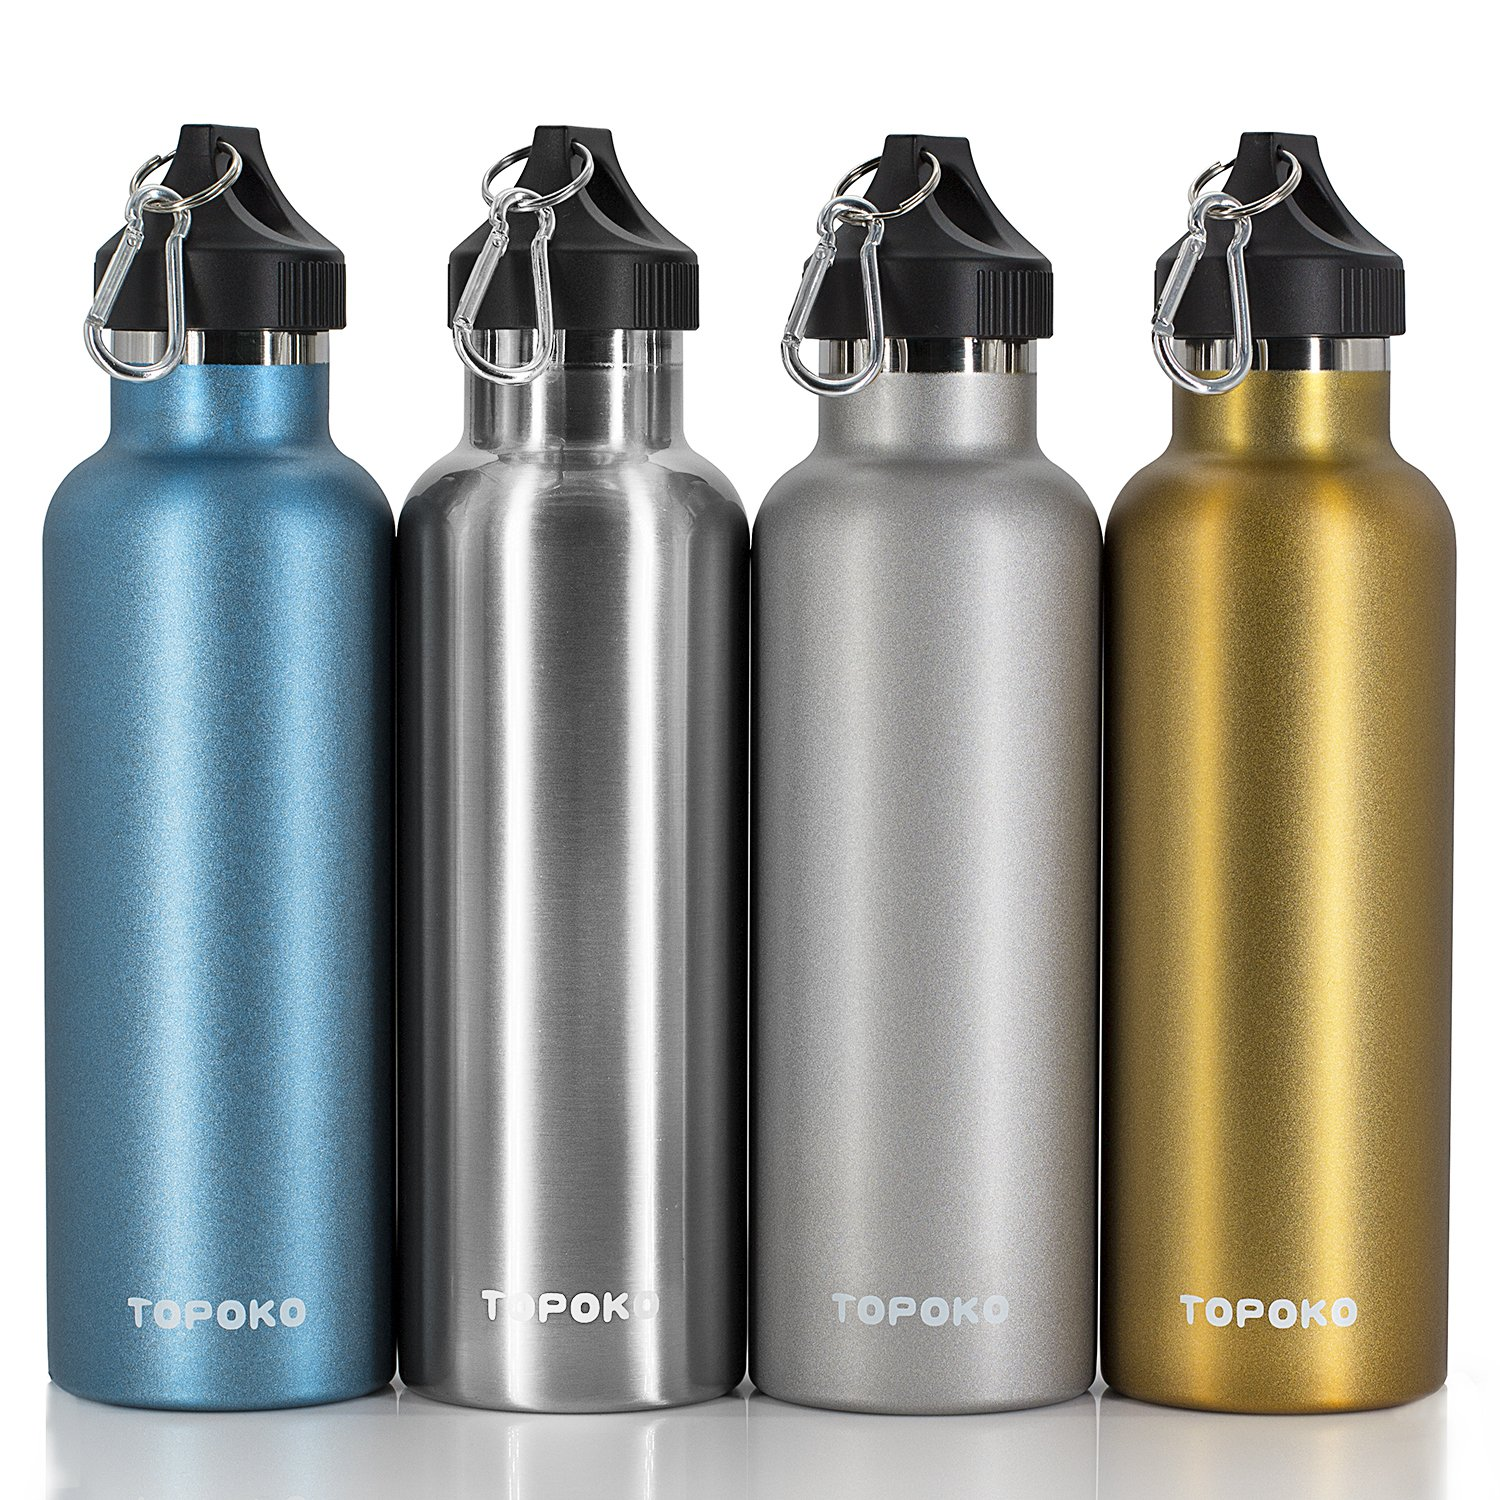 Stainless Steel Vacuum Insulated Water Bottle Double Wall - TOPOKO Top Quality Hydration Thermos - Camping Hiking Travel No Leak Rust Resistant Colored - 25 oz, Gold by TOPOKO (Image #10)